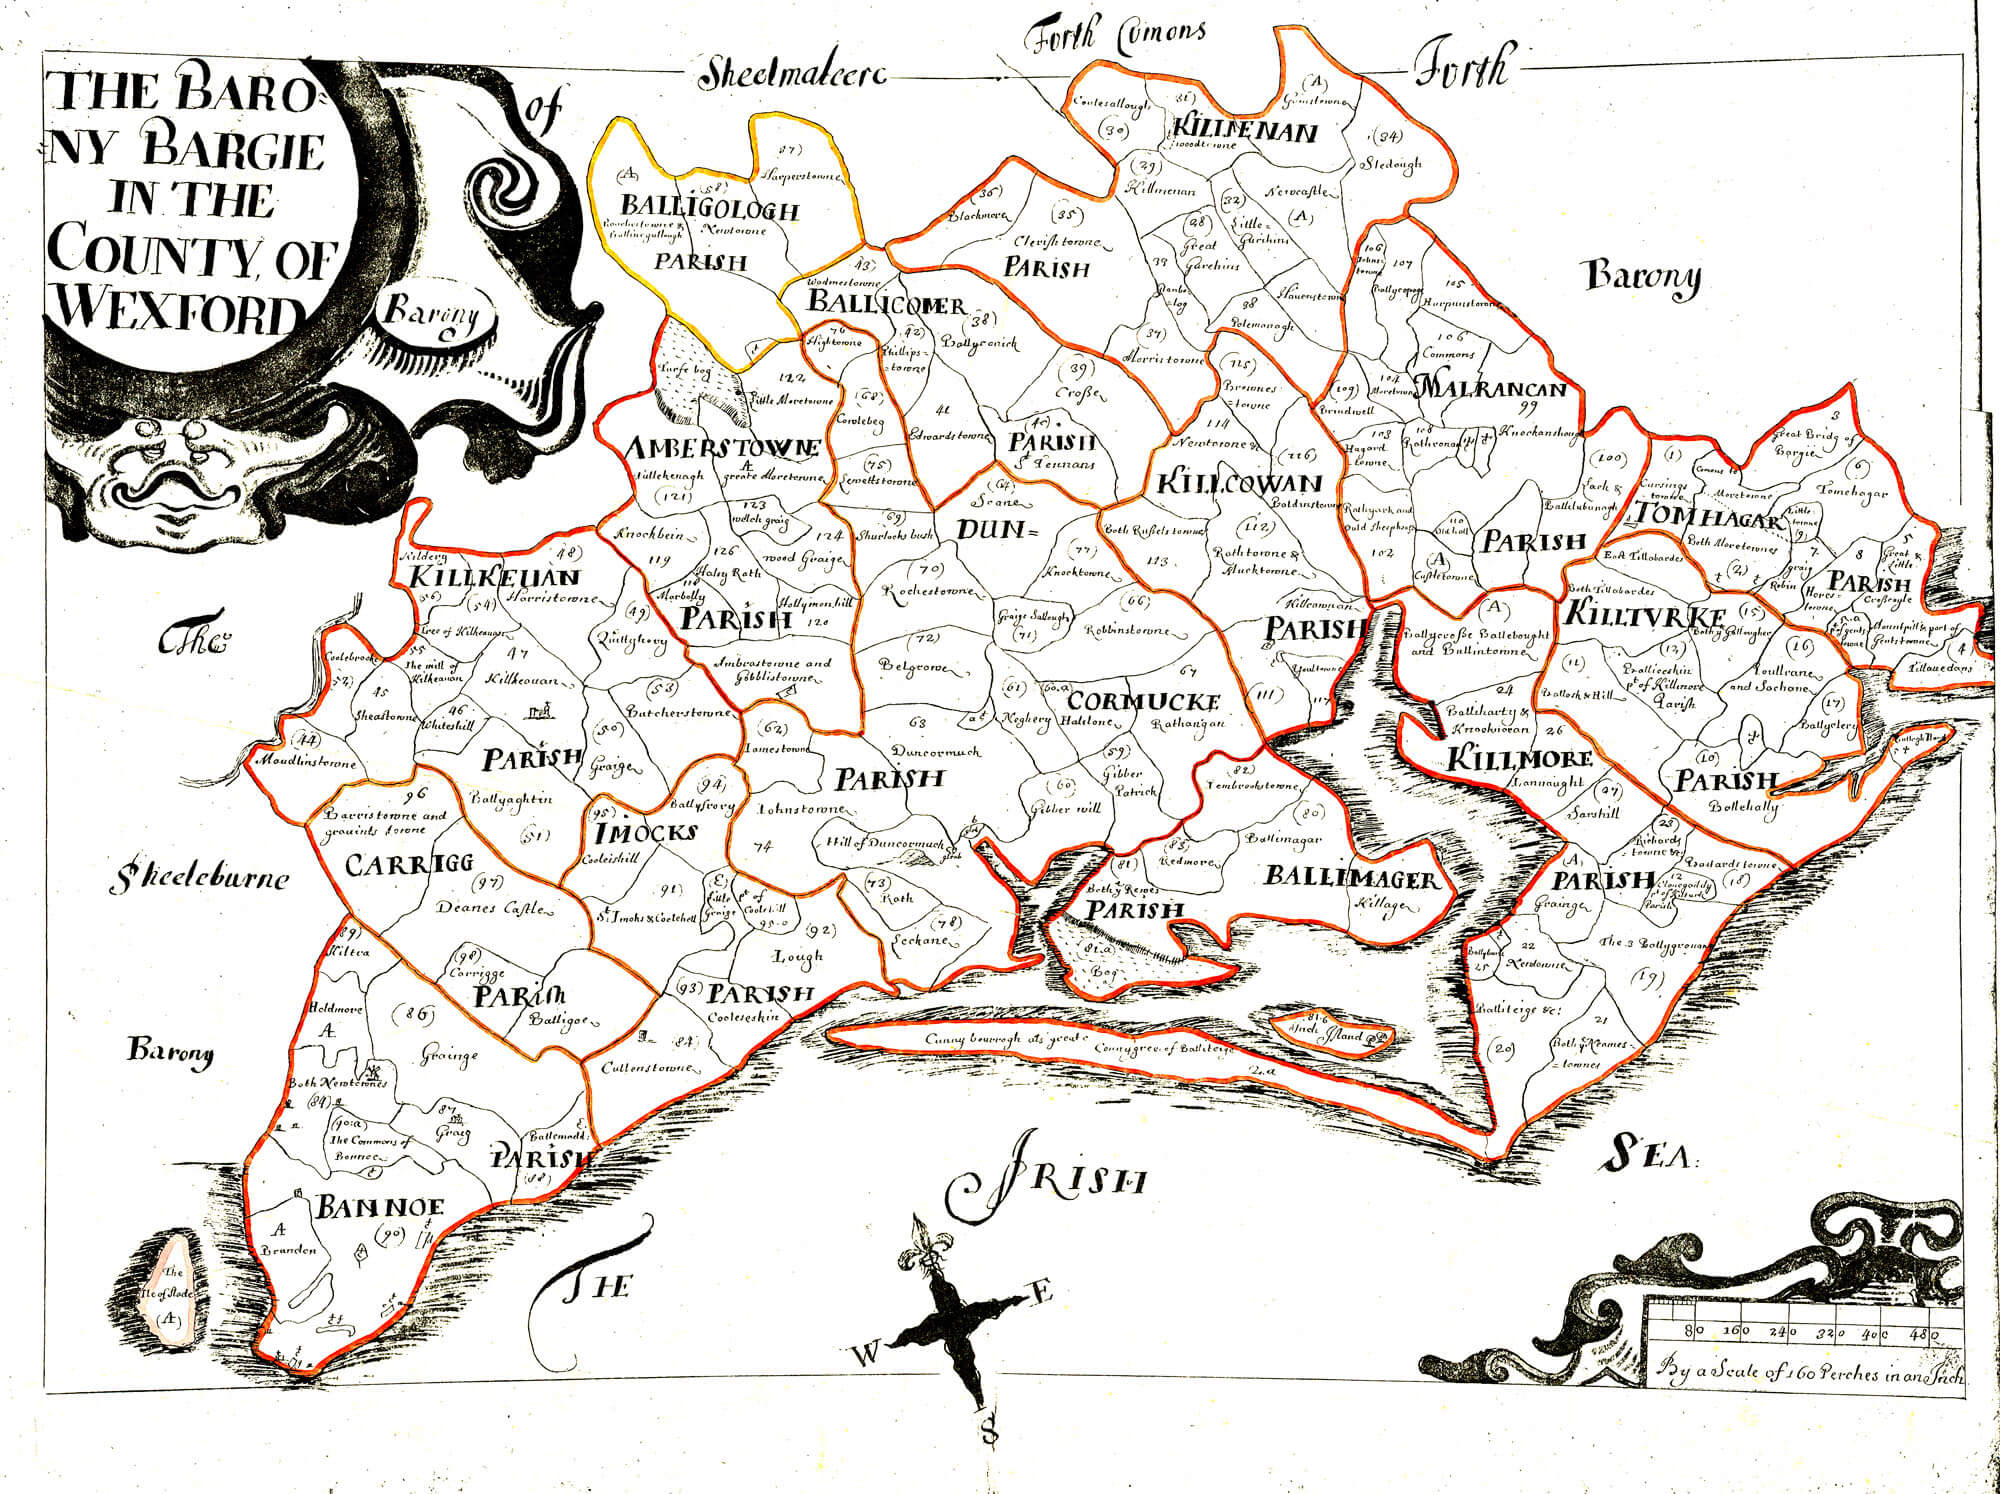 Ireland Barony Maps County Wexford – L Brown Collection on ireland wexford, courtown wexford, hook lighthouse wexford, whites hotel wexford, co wexford,